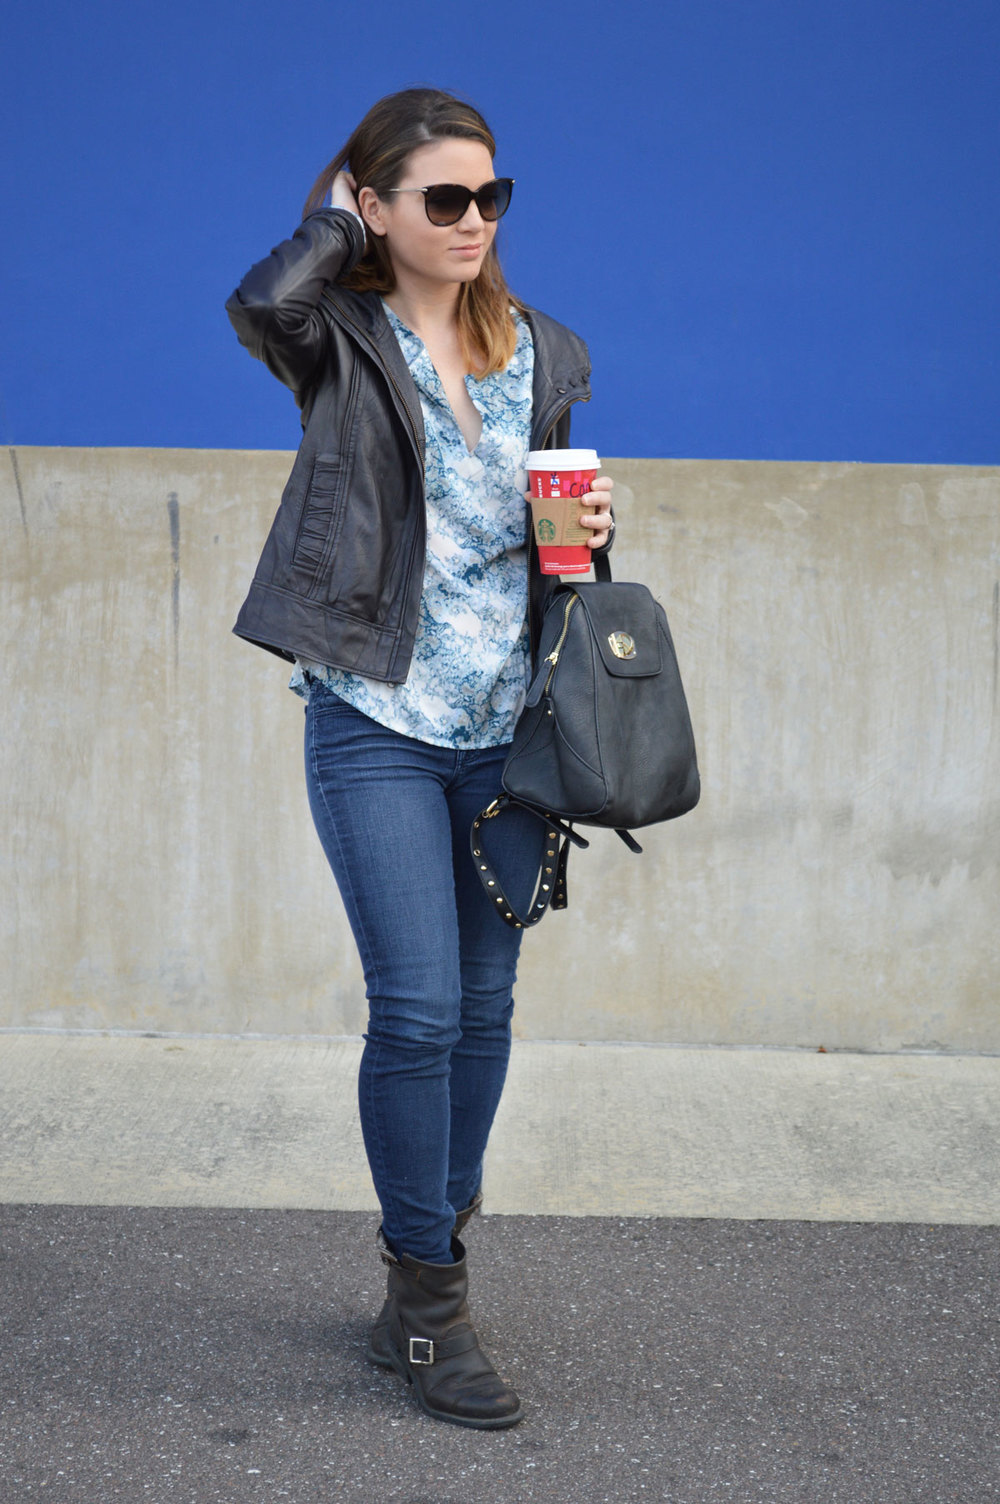 shoedazzle-backpack-wiw-fall-outfit-leather-jacket-forver21-favorite-frye-boots-marc-jacobs-sunglasses-starbucks-style-blogger-tampa-florida.jpeg